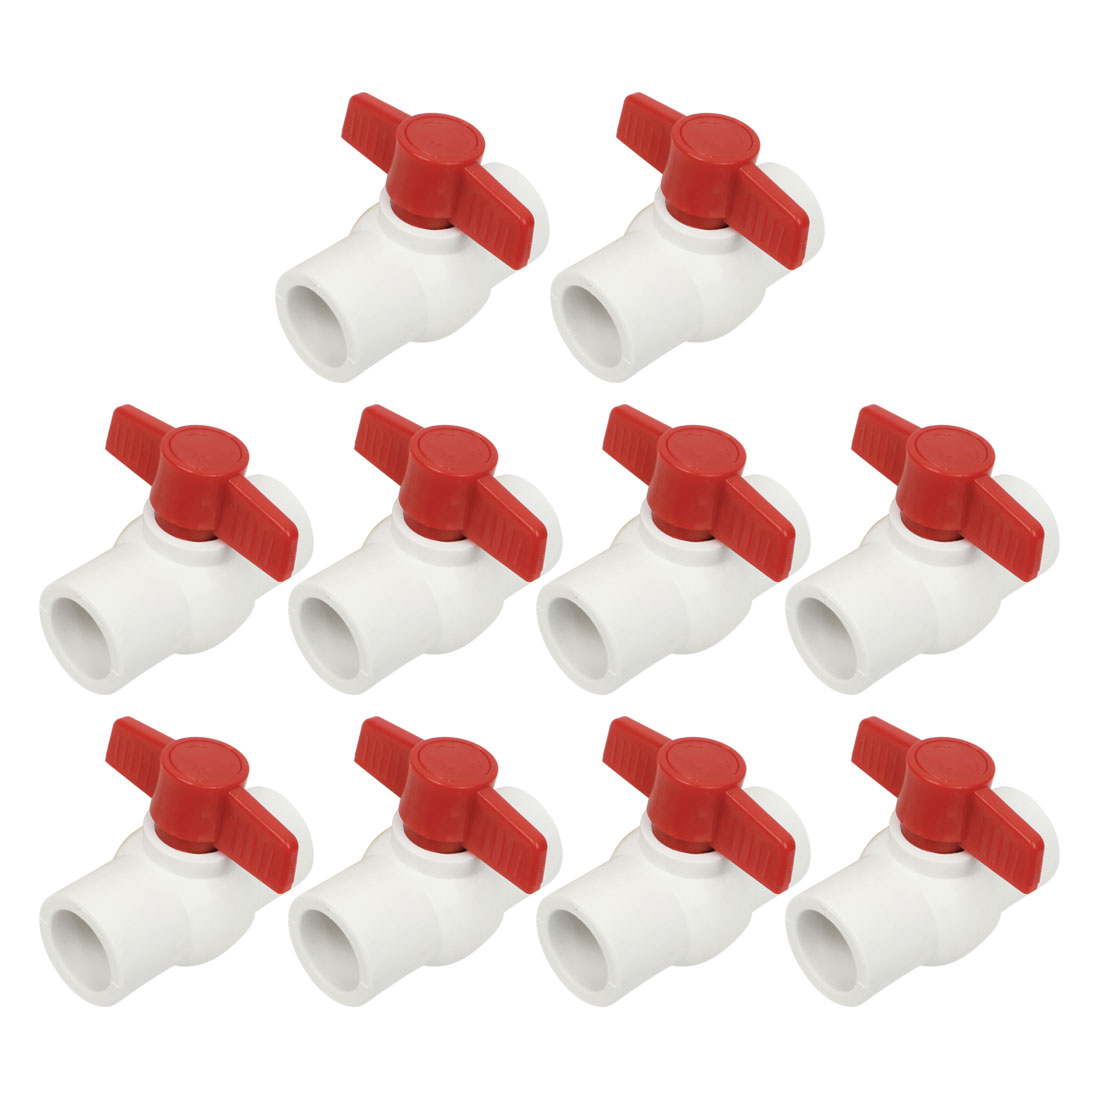 10pcs Plumbing Red T Handle PPR Pipe Fitting Ball Valve 31mmx31mm